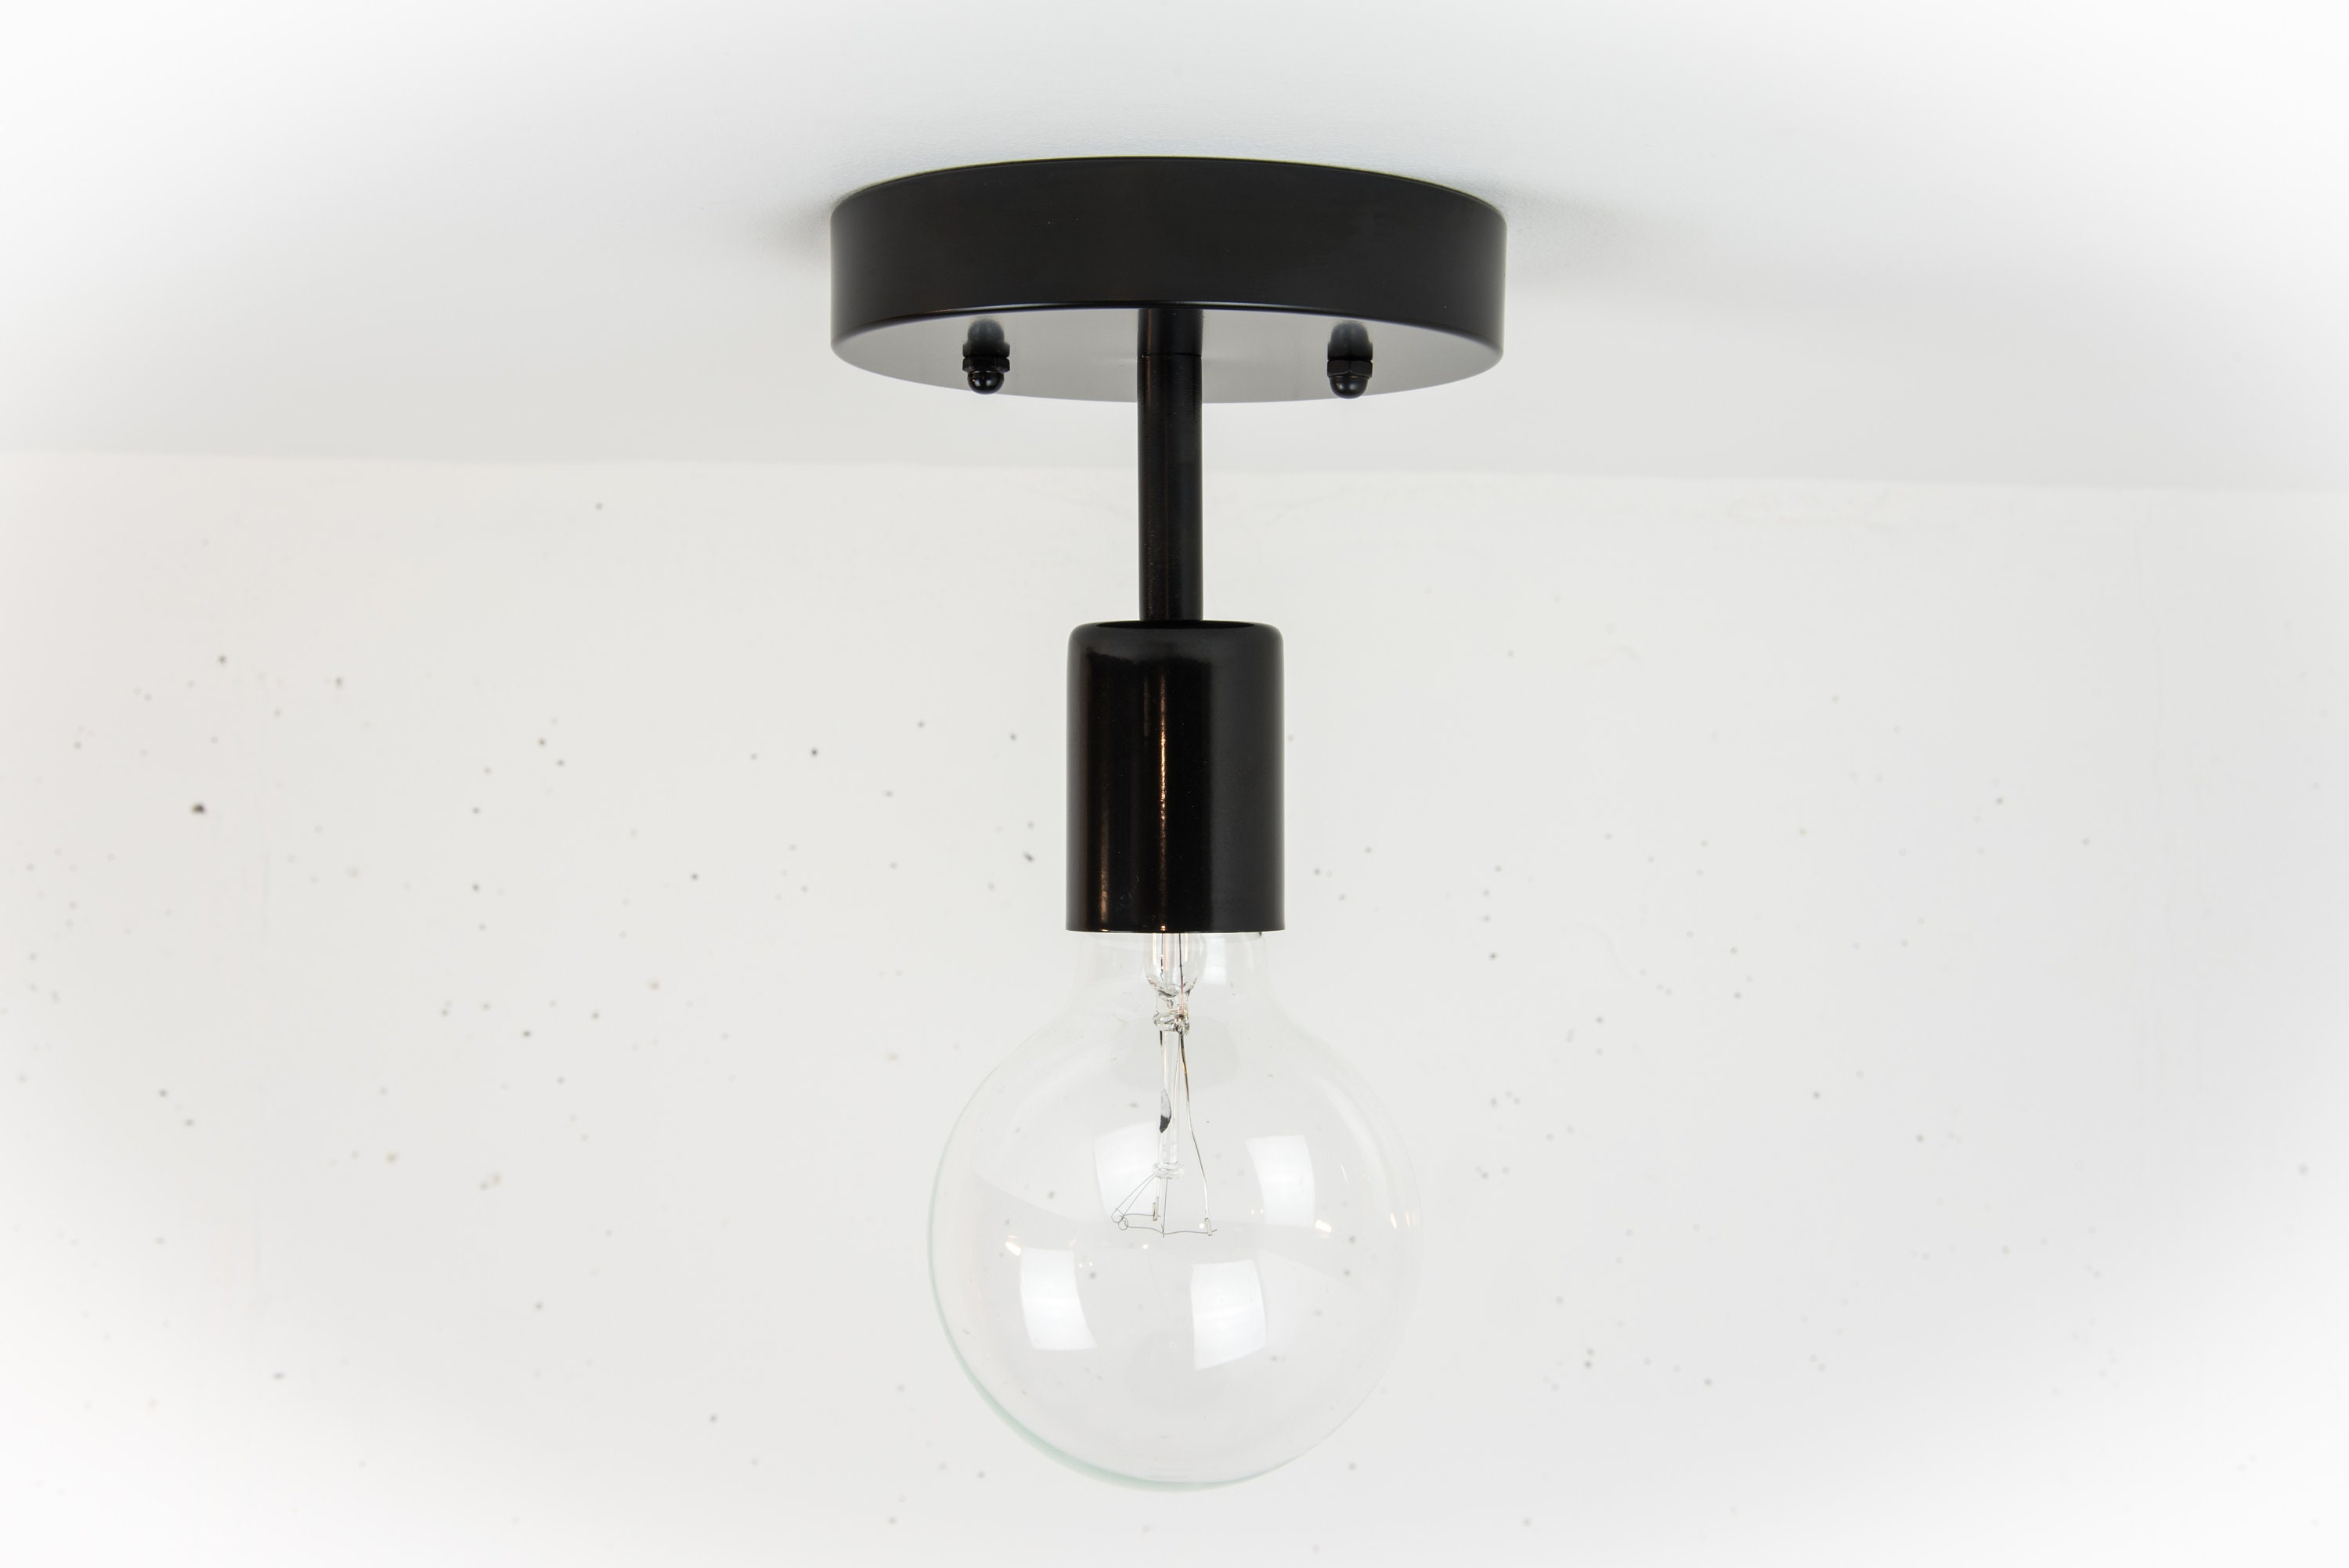 Modern ceiling light black modern light ceiling lamp modern ceiling light black modern light ceiling lamp industrial ceiling lamp modern home lighting black lighting simple ceiling aloadofball Image collections